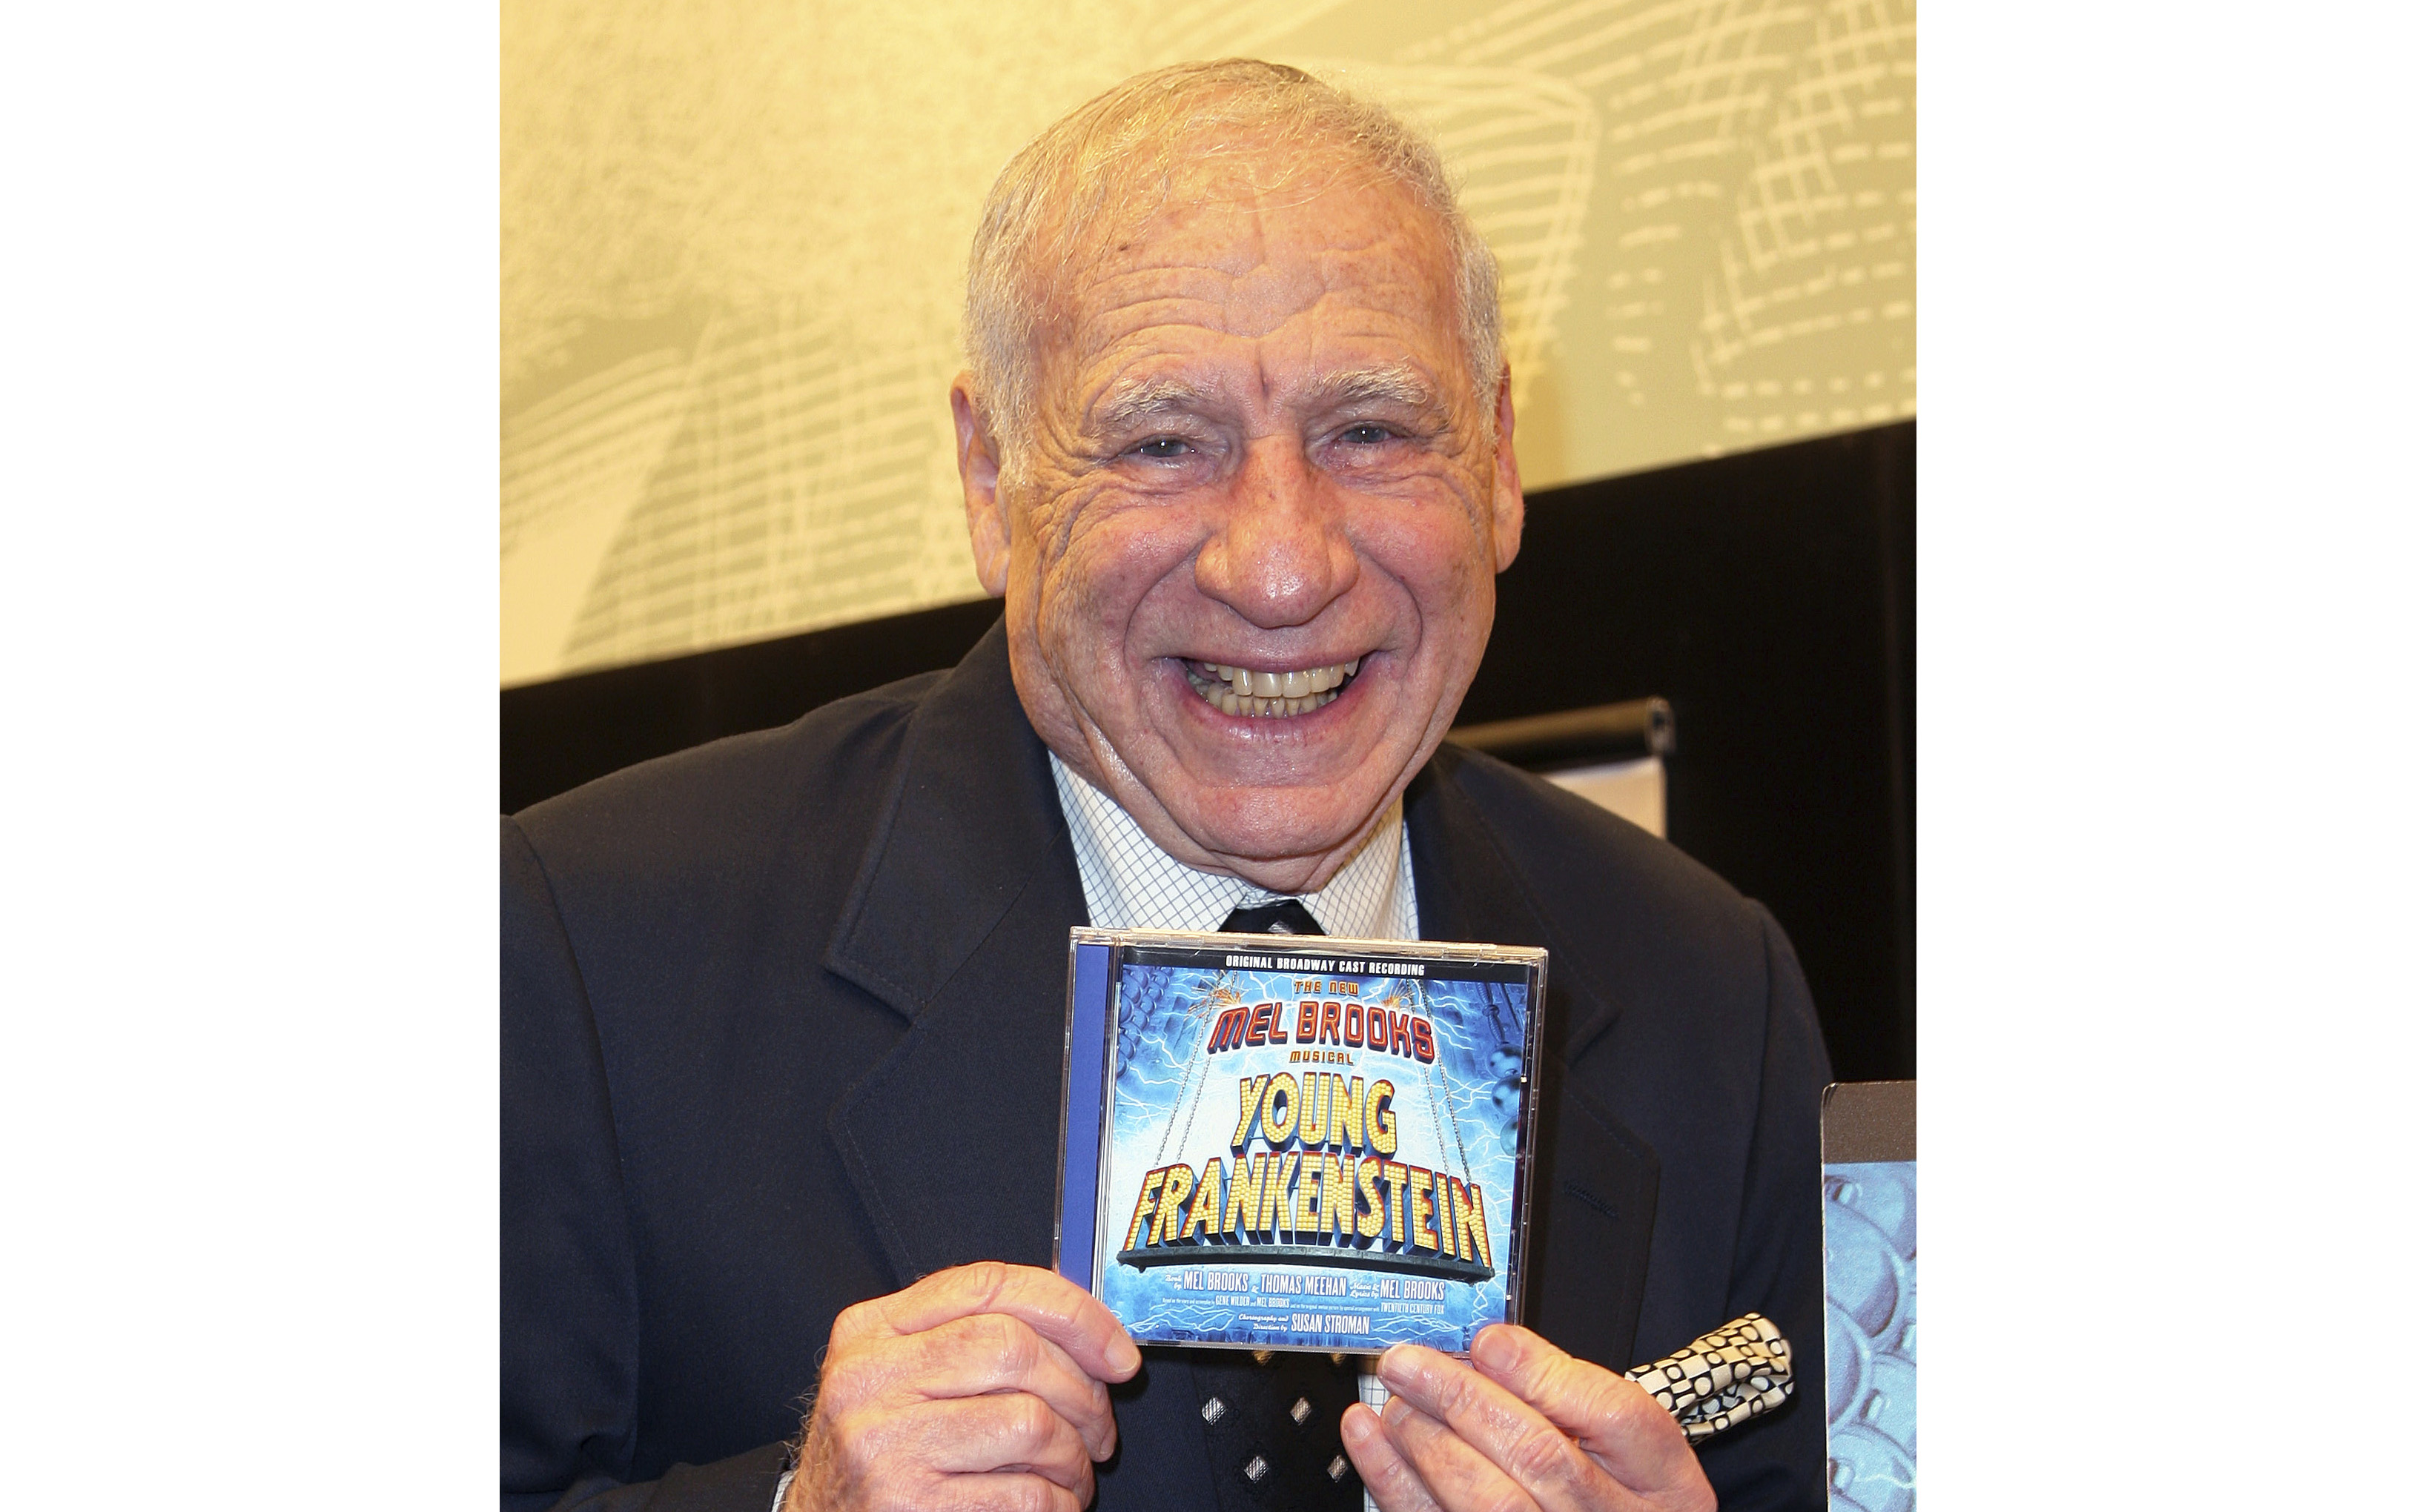 """This 2008 file photo shows Mel Brooks posing with the CD of the Broadway performance sound track of """"Young Frankenstein"""" in New York."""